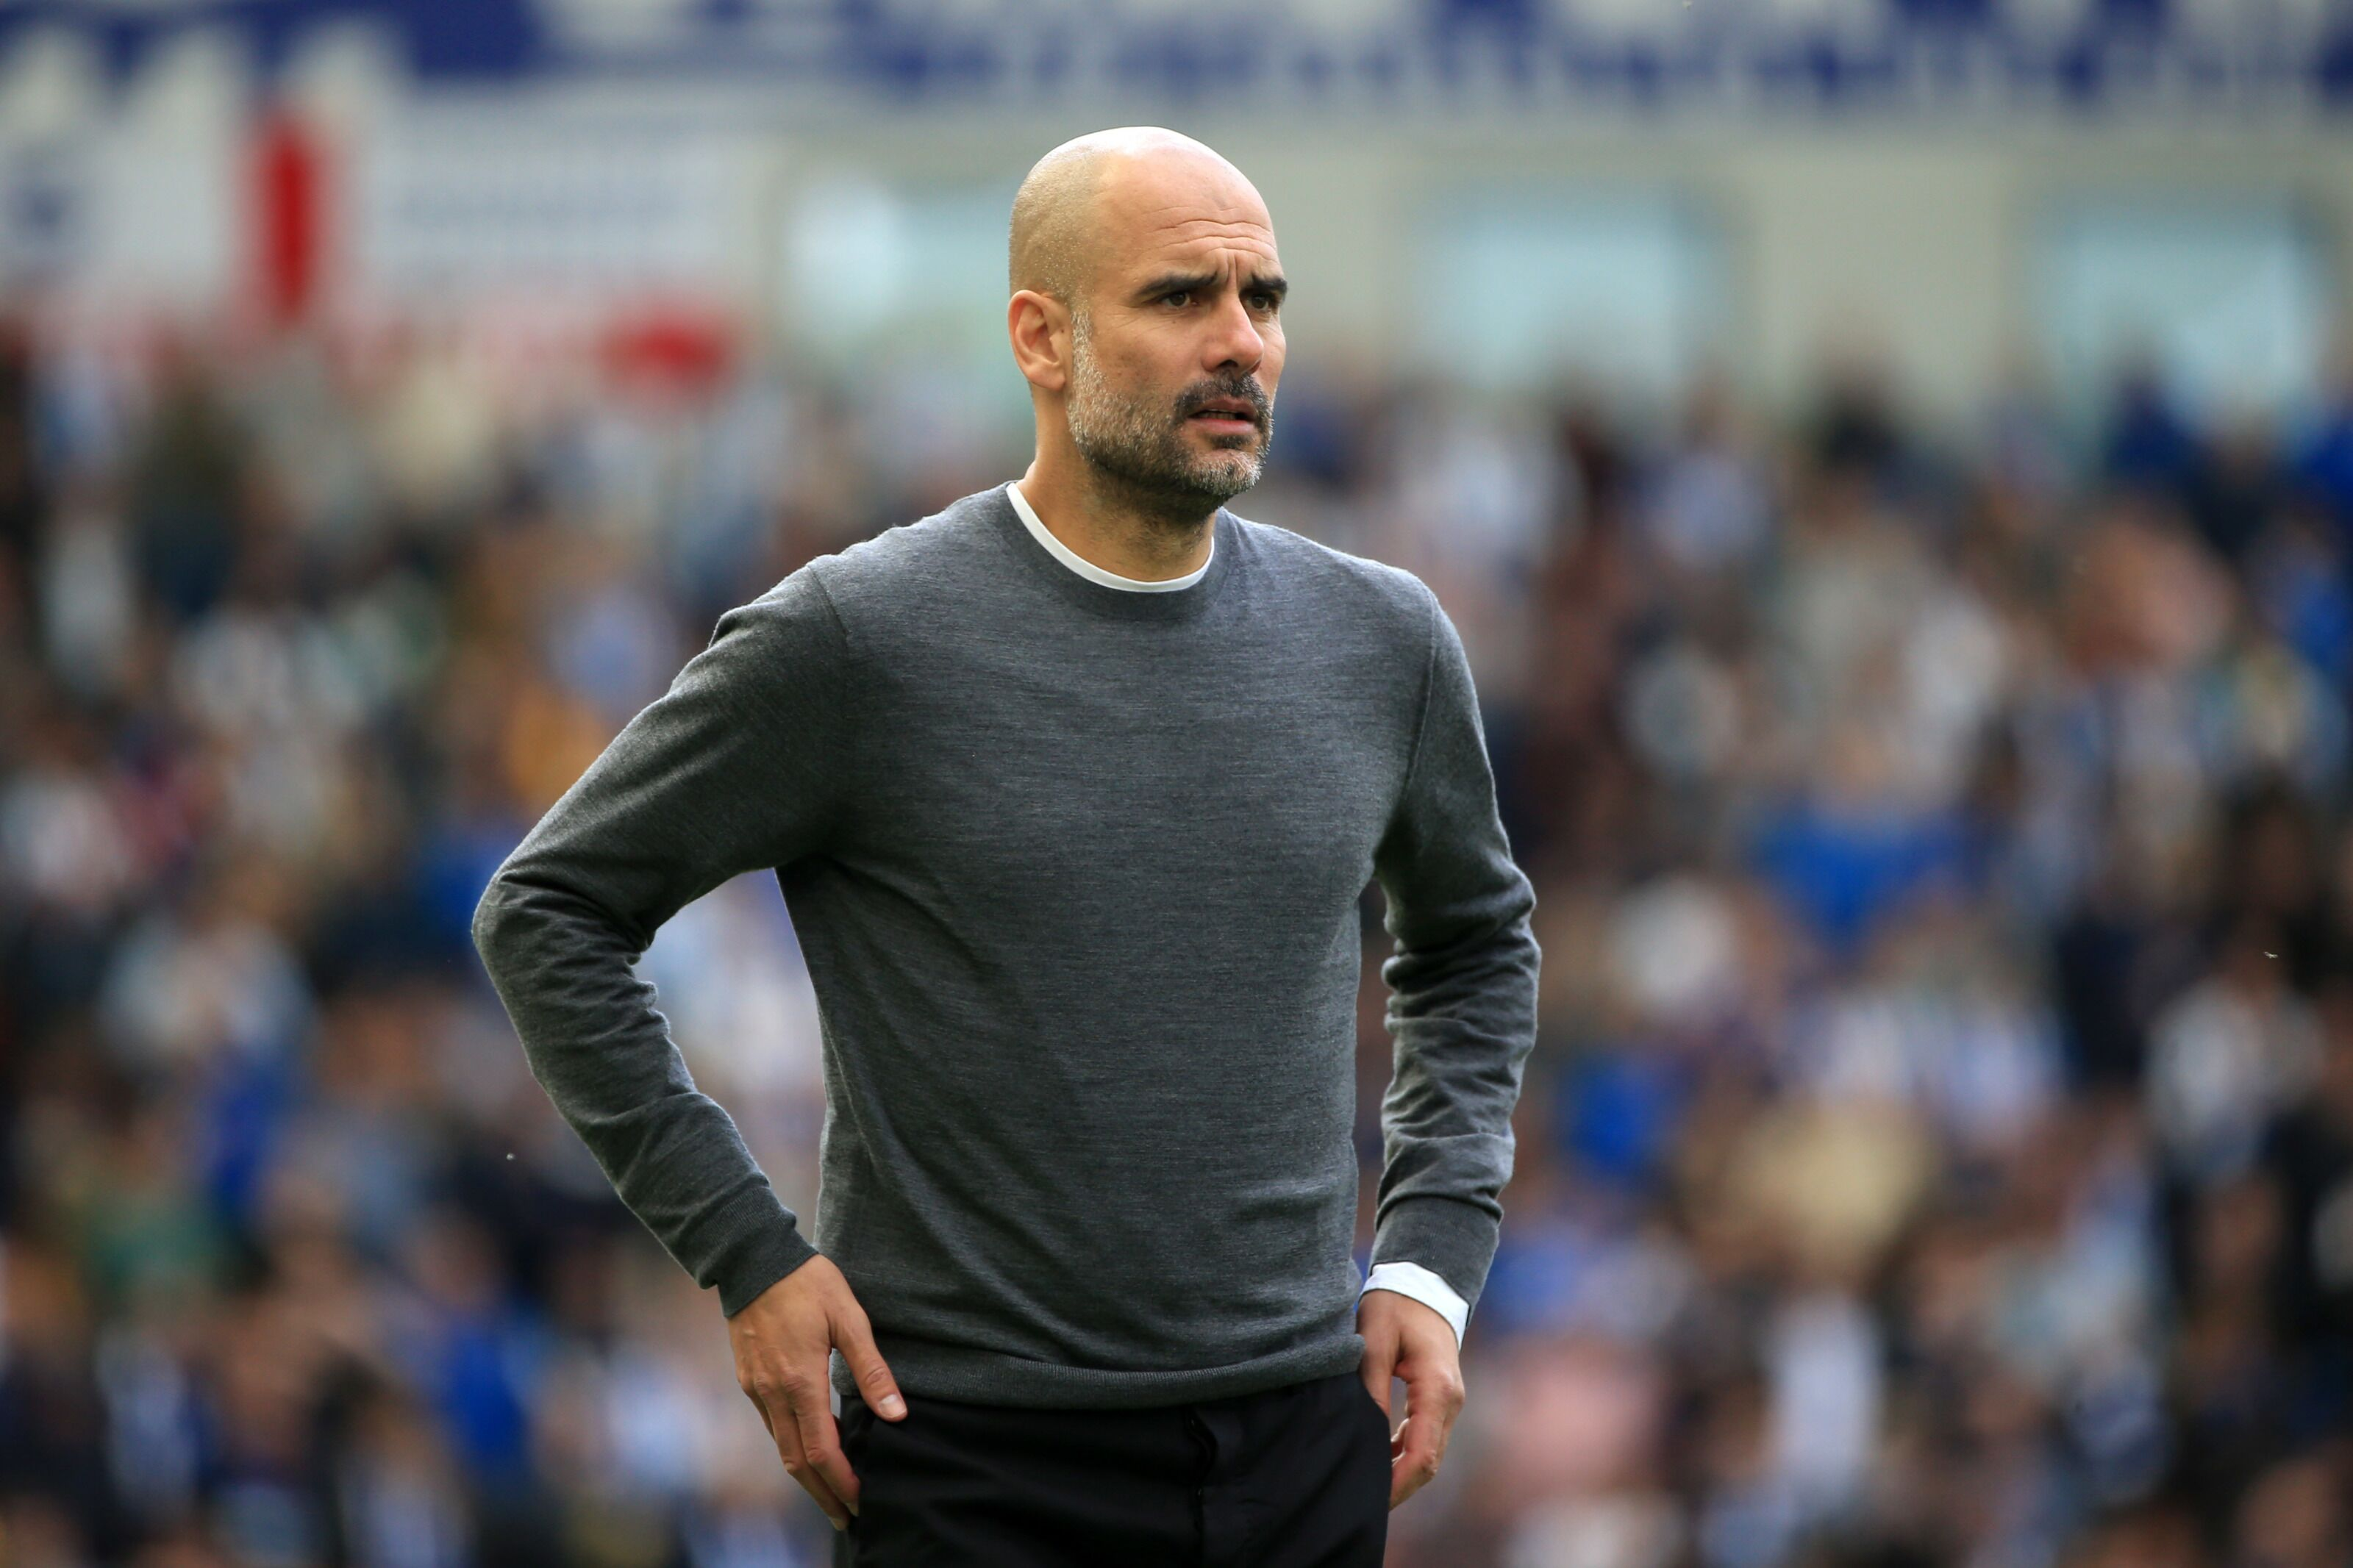 Have Manchester City identified Pep Guardiola's successor?